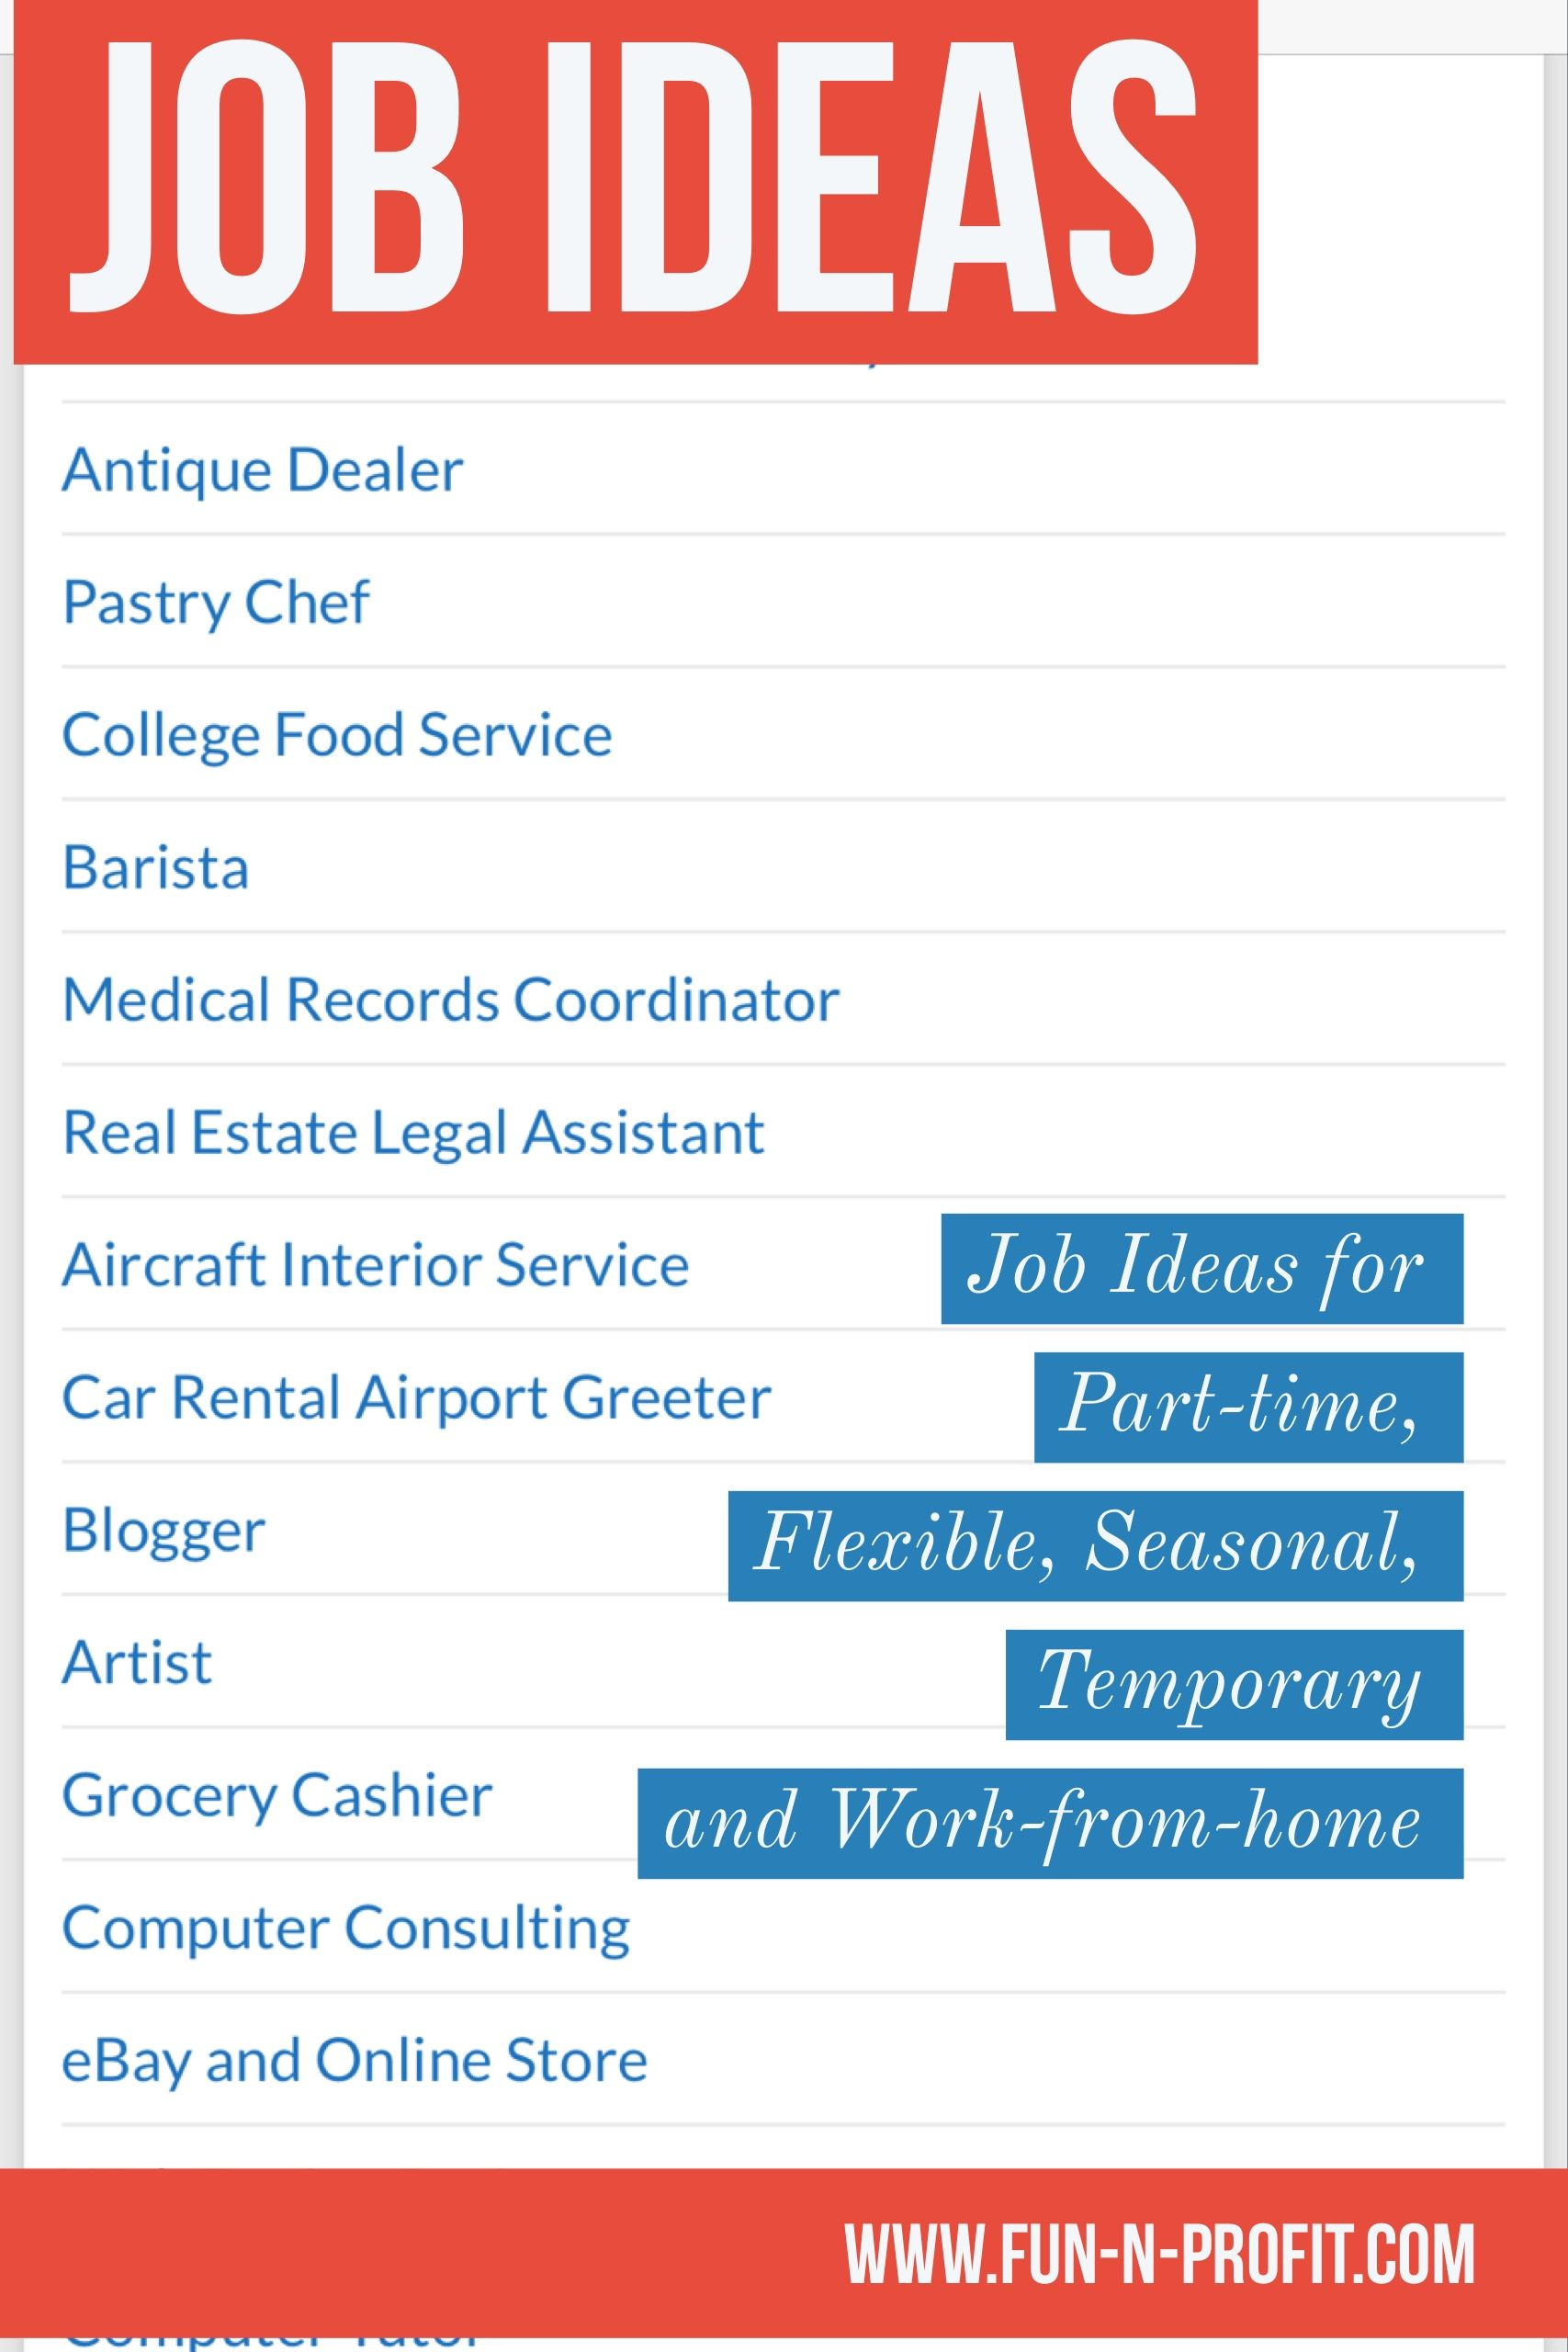 part time job ideas like barista medical records coordinator real estate legal assistant aircraft interior service car rental airport greeter blogger